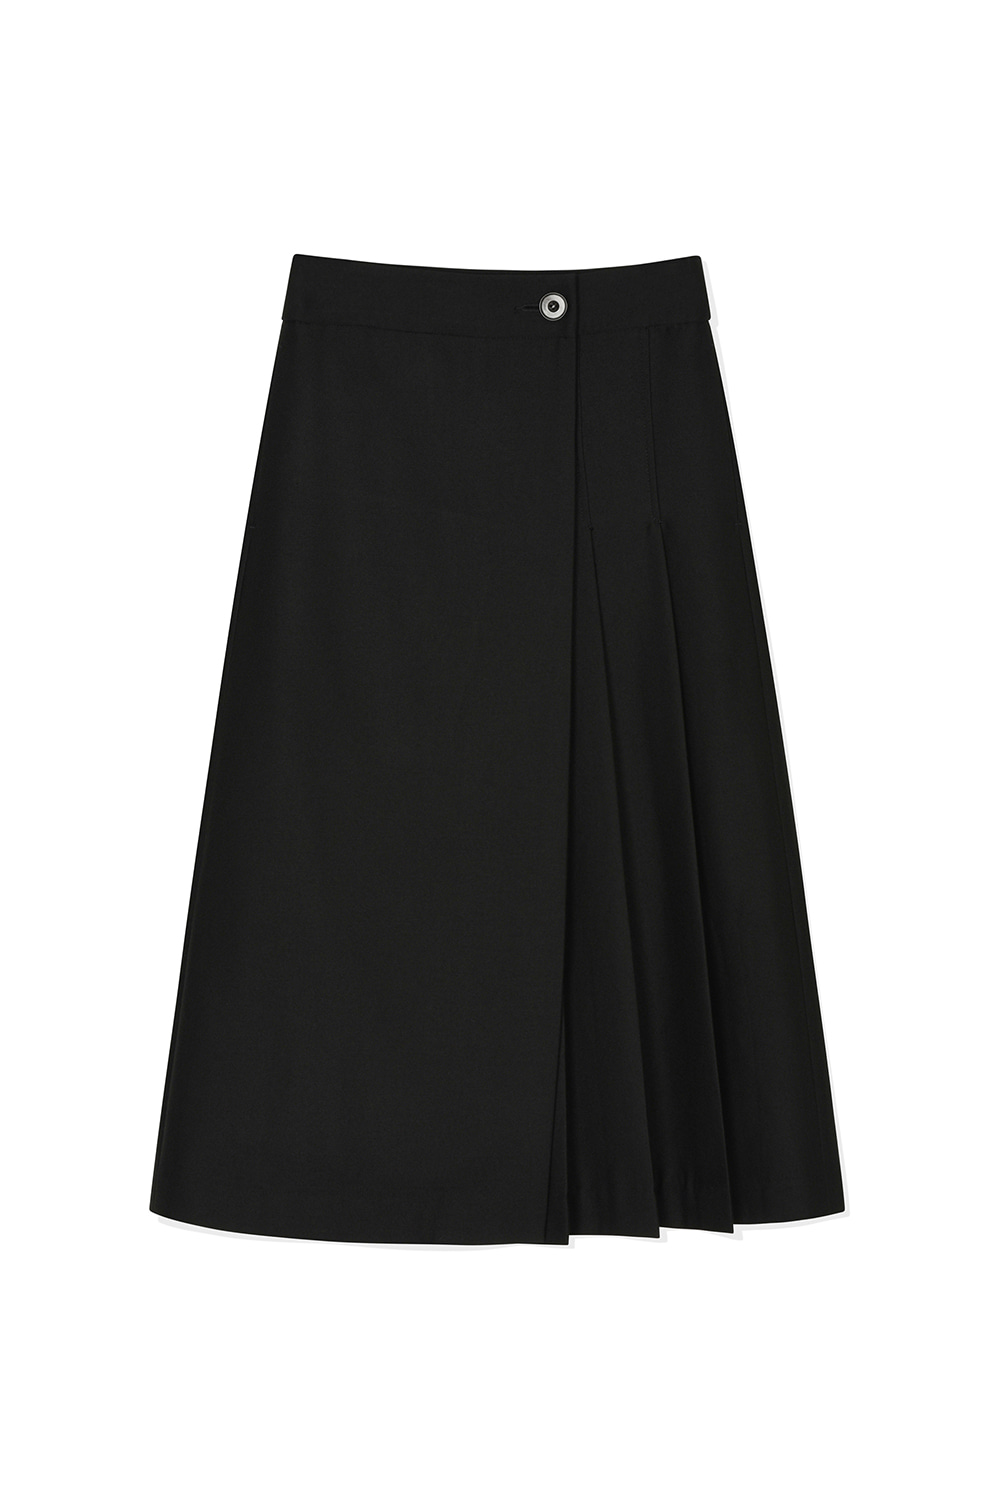 Wool Pleats Wrap Skirts Women JA [Black] -10%